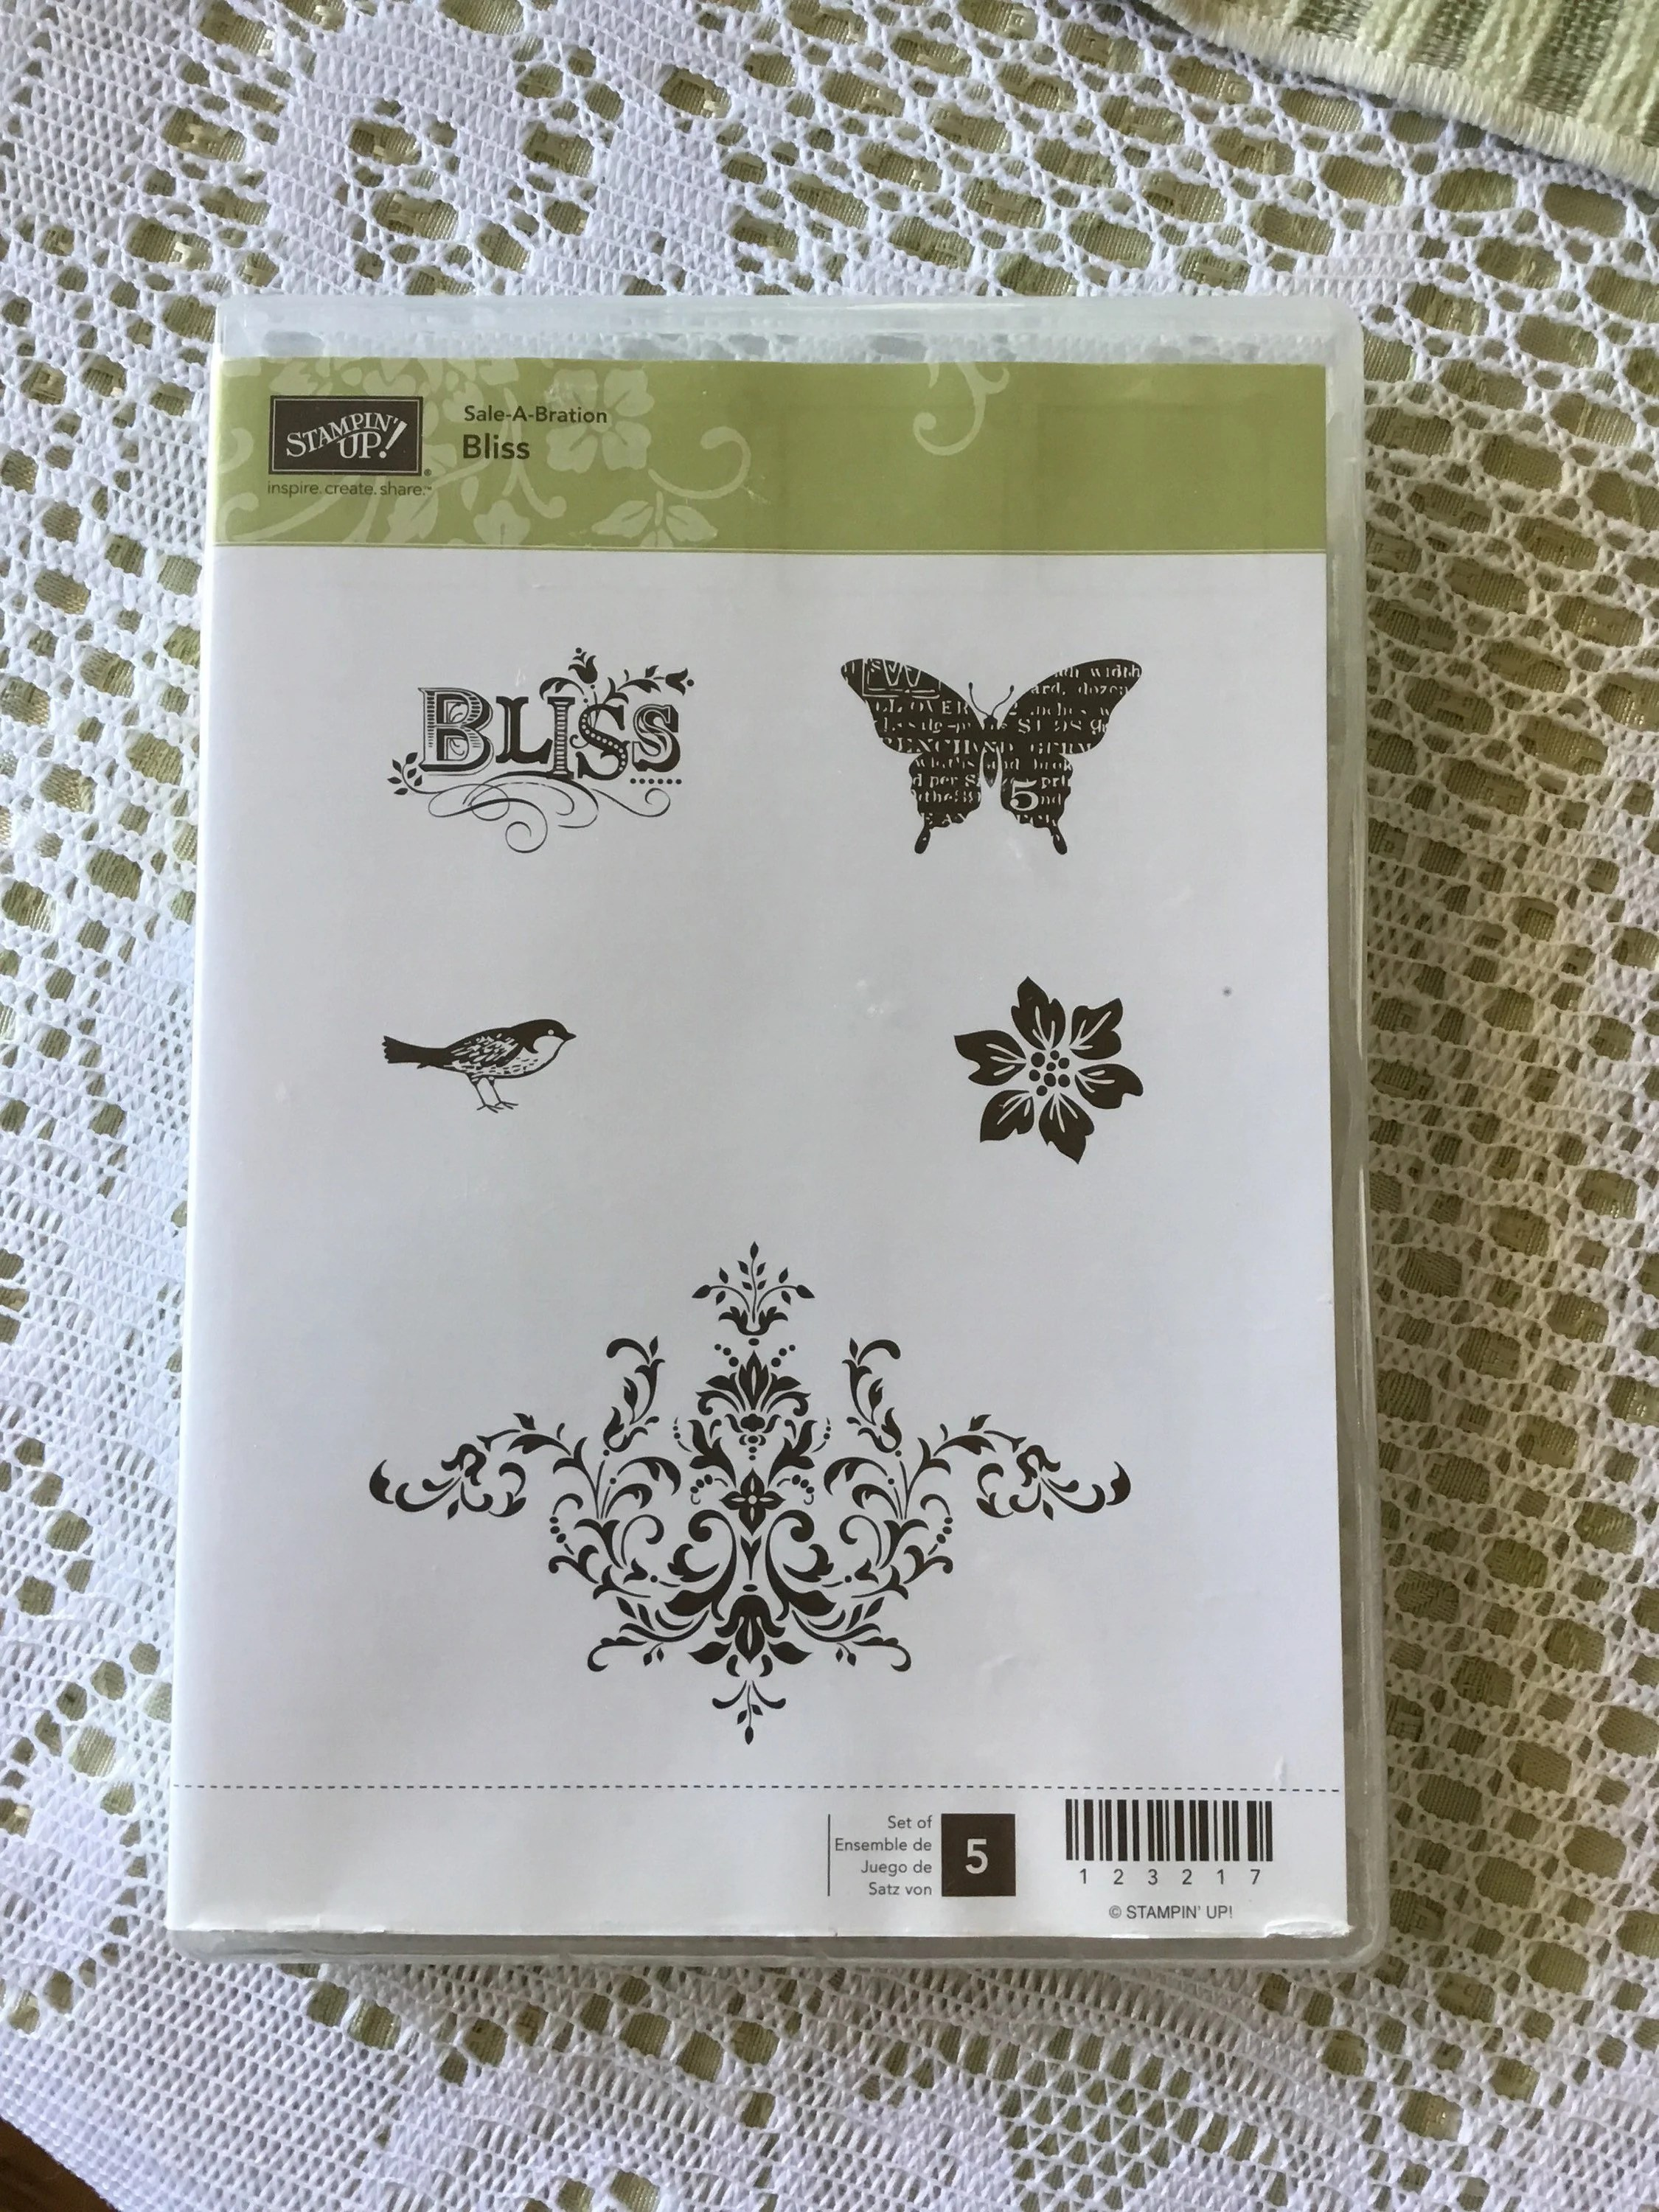 Stampin Up Karten Verkaufen Stampin Up Rubber Stamp Set For Clear Mounts Bliss Used Card Making Scrapbooking Parisian Vintage Bird Butterfly Flower Filigree